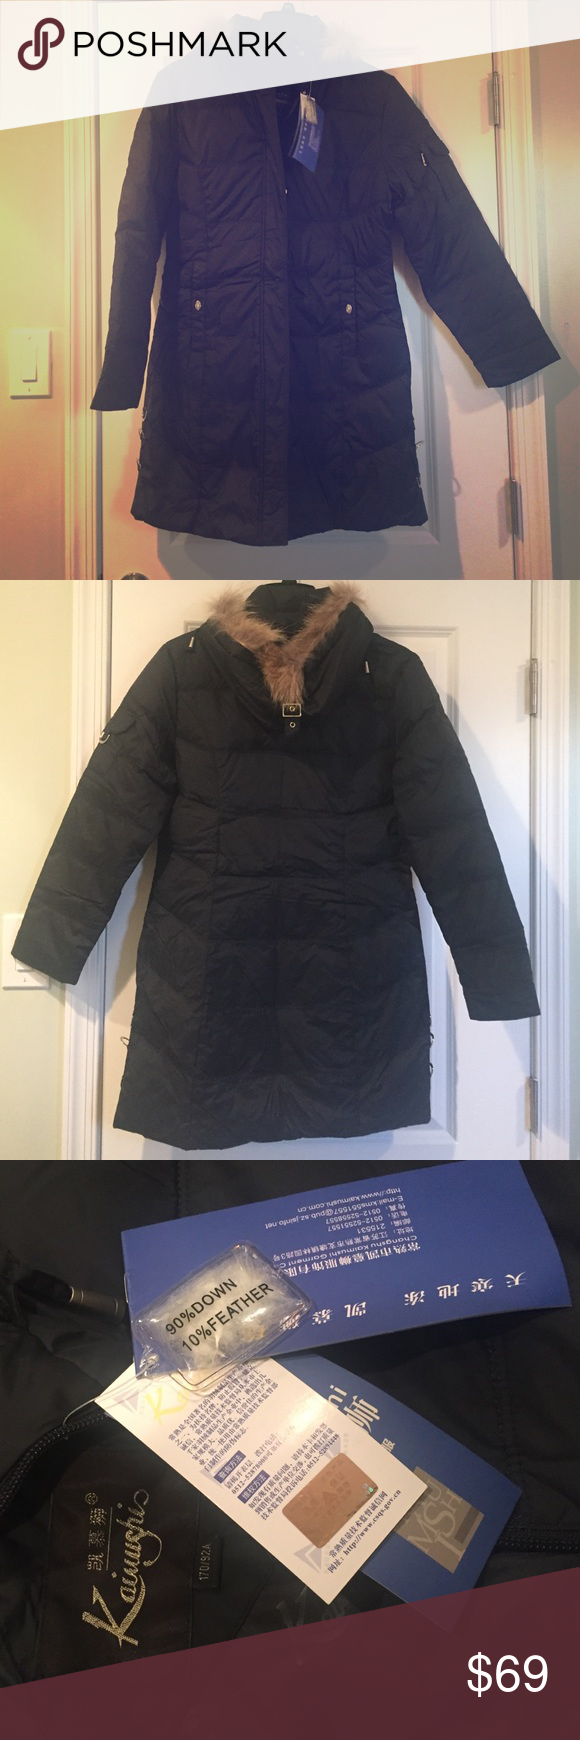 "🎉Women's winter down jacket Brand new with tags. Falls a few inches below the buttocks and I'm 5'4"". 90% down and 10% feather filling will keep you warm this winter. Removable faux fur trimmed hood. Color is black with a very subtle hint of blue. Fits like a small 4/6. Tagging for exposure only. Not actual brand. Calvin Klein Jackets & Coats"